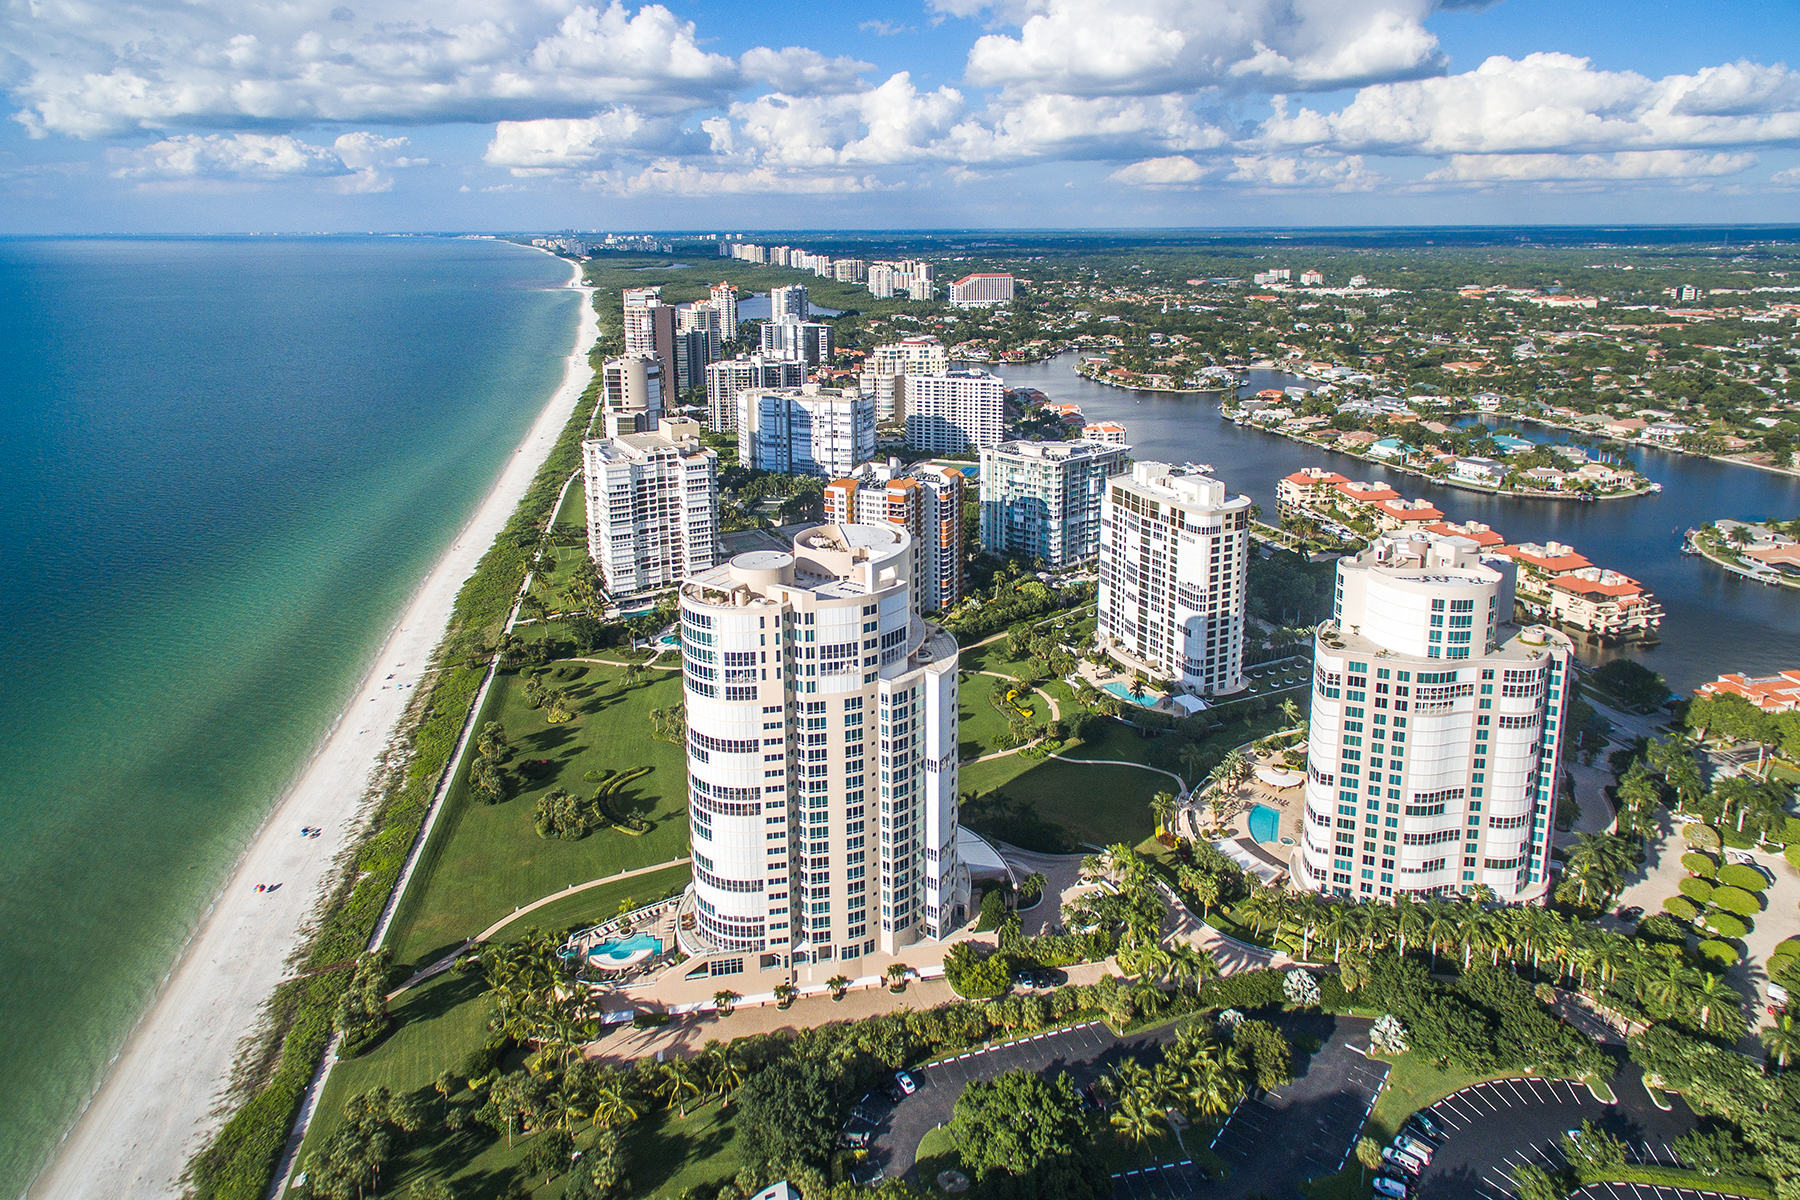 Condominium for Sale at PARK SHORE - REGENT 4101 Gulf Shore Blvd N 4N Naples, Florida 34103 United States